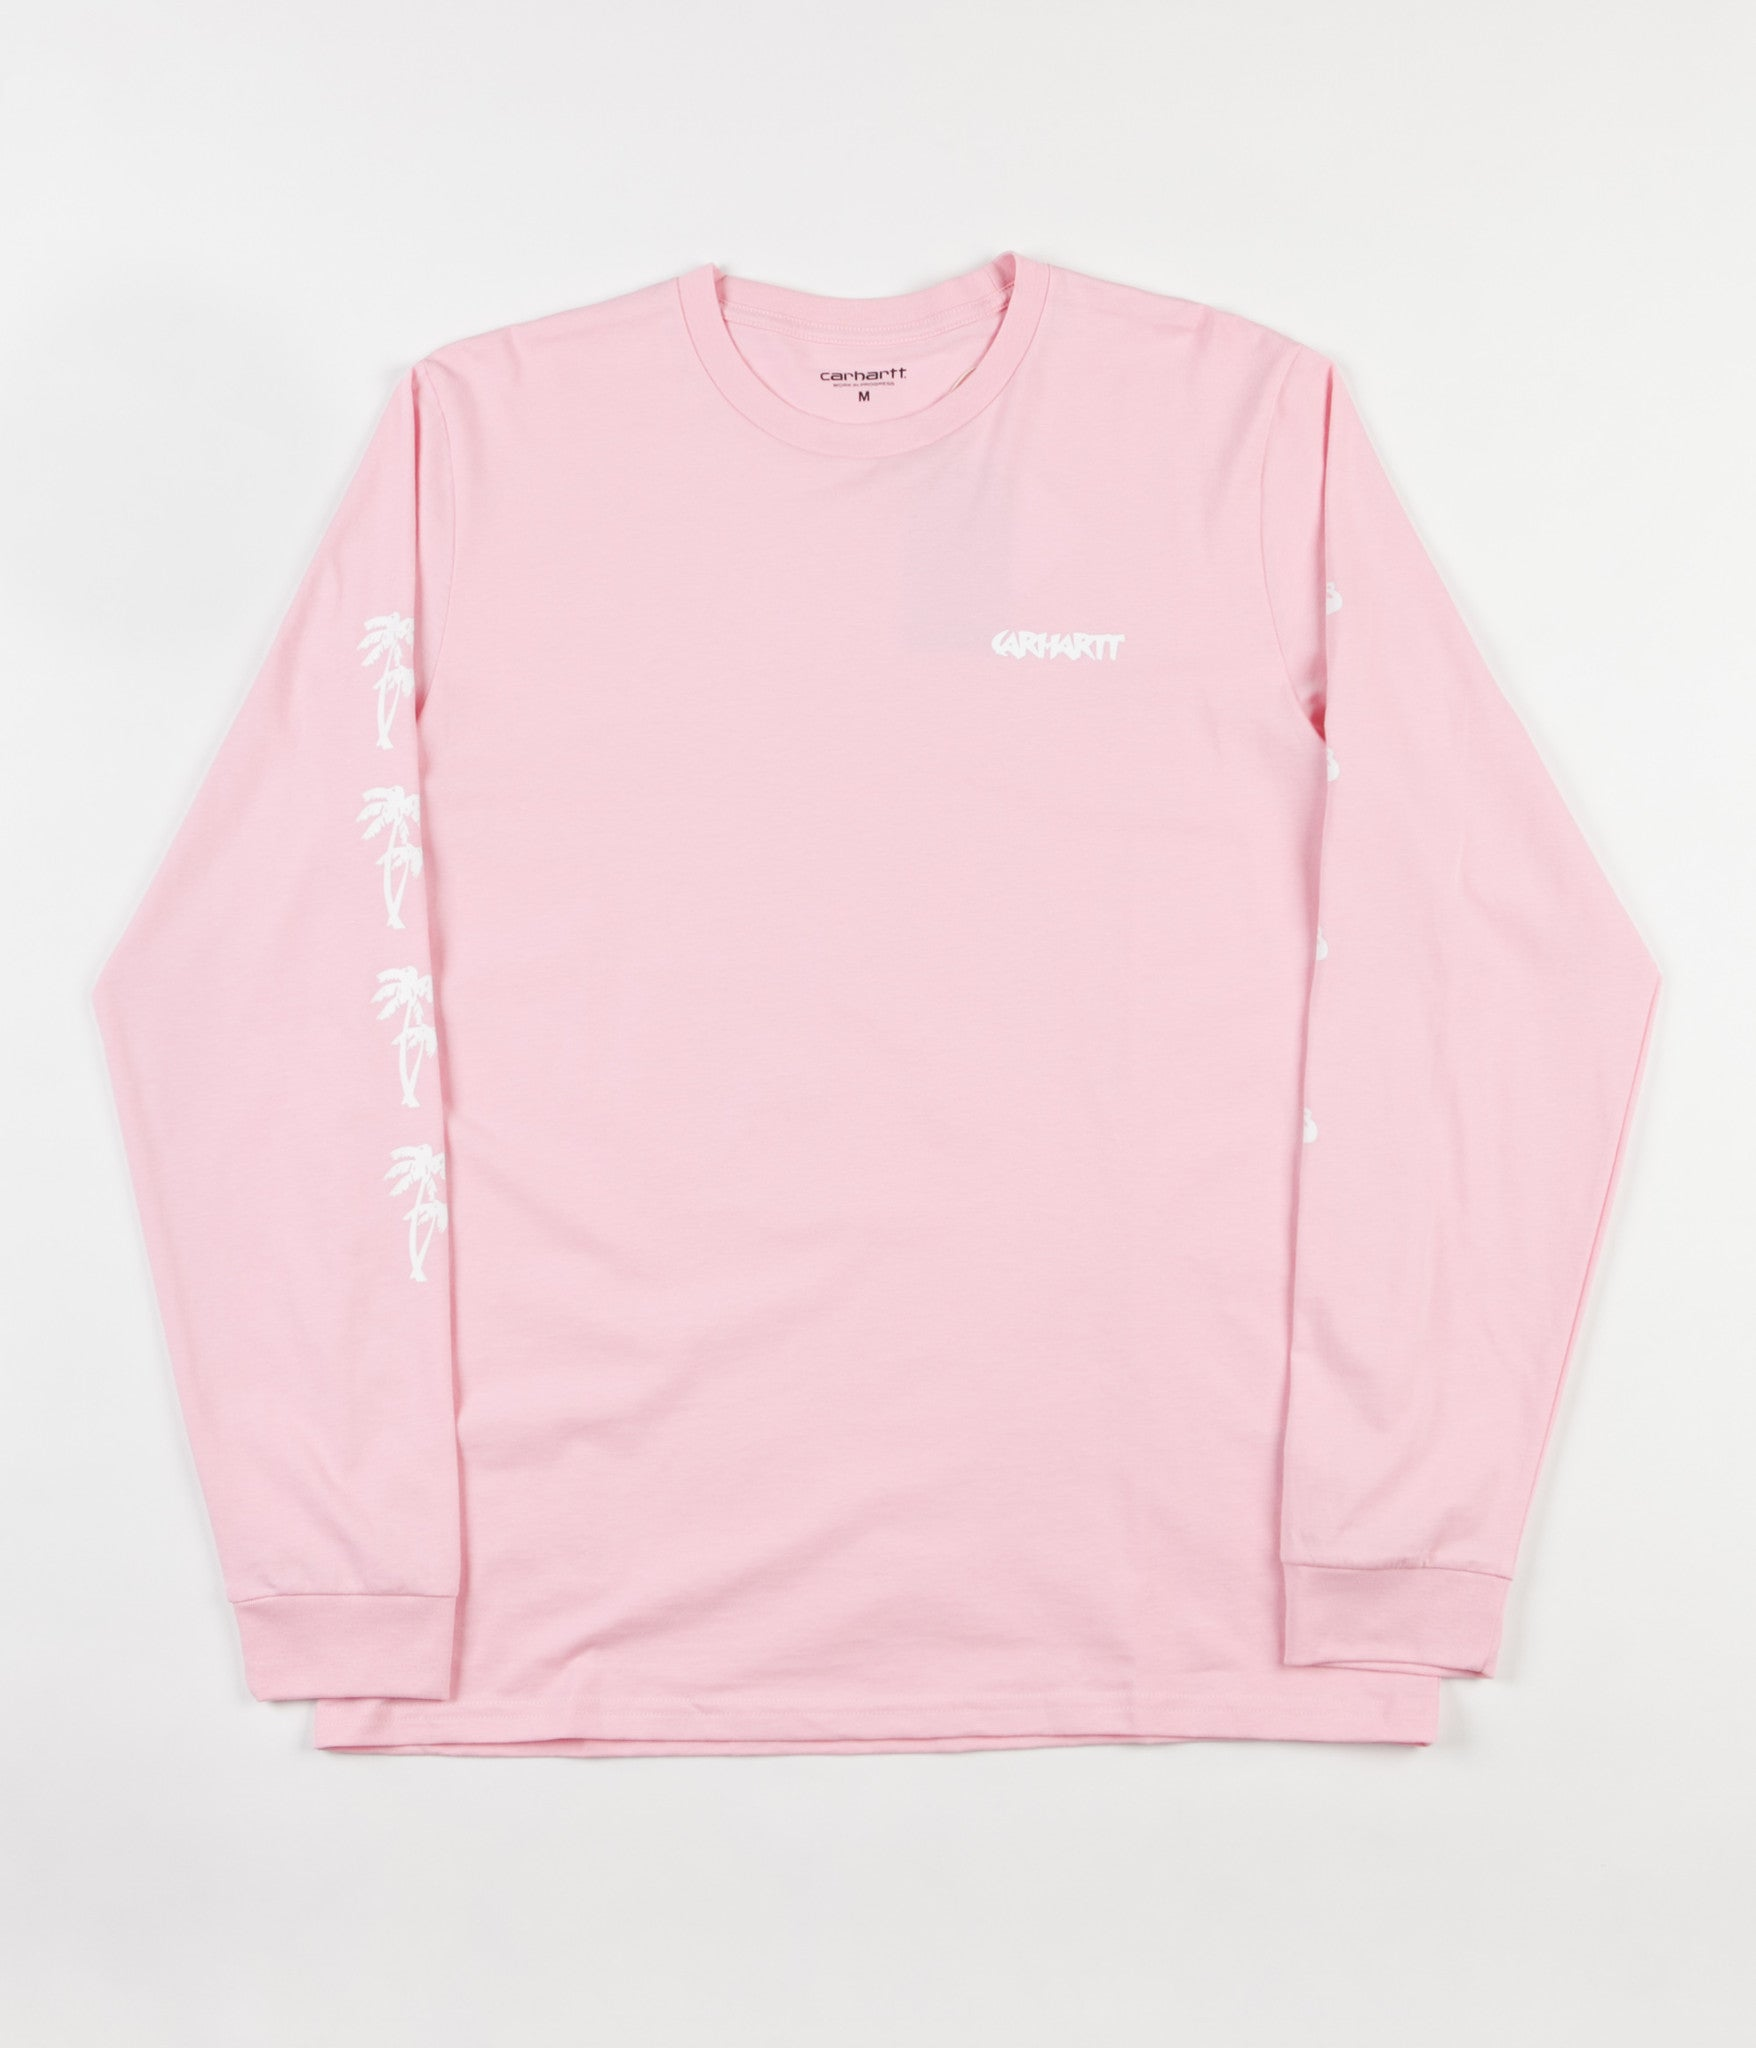 Carhartt Flamingo Script Long Sleeve T-Shirt - Vegas Pink / White